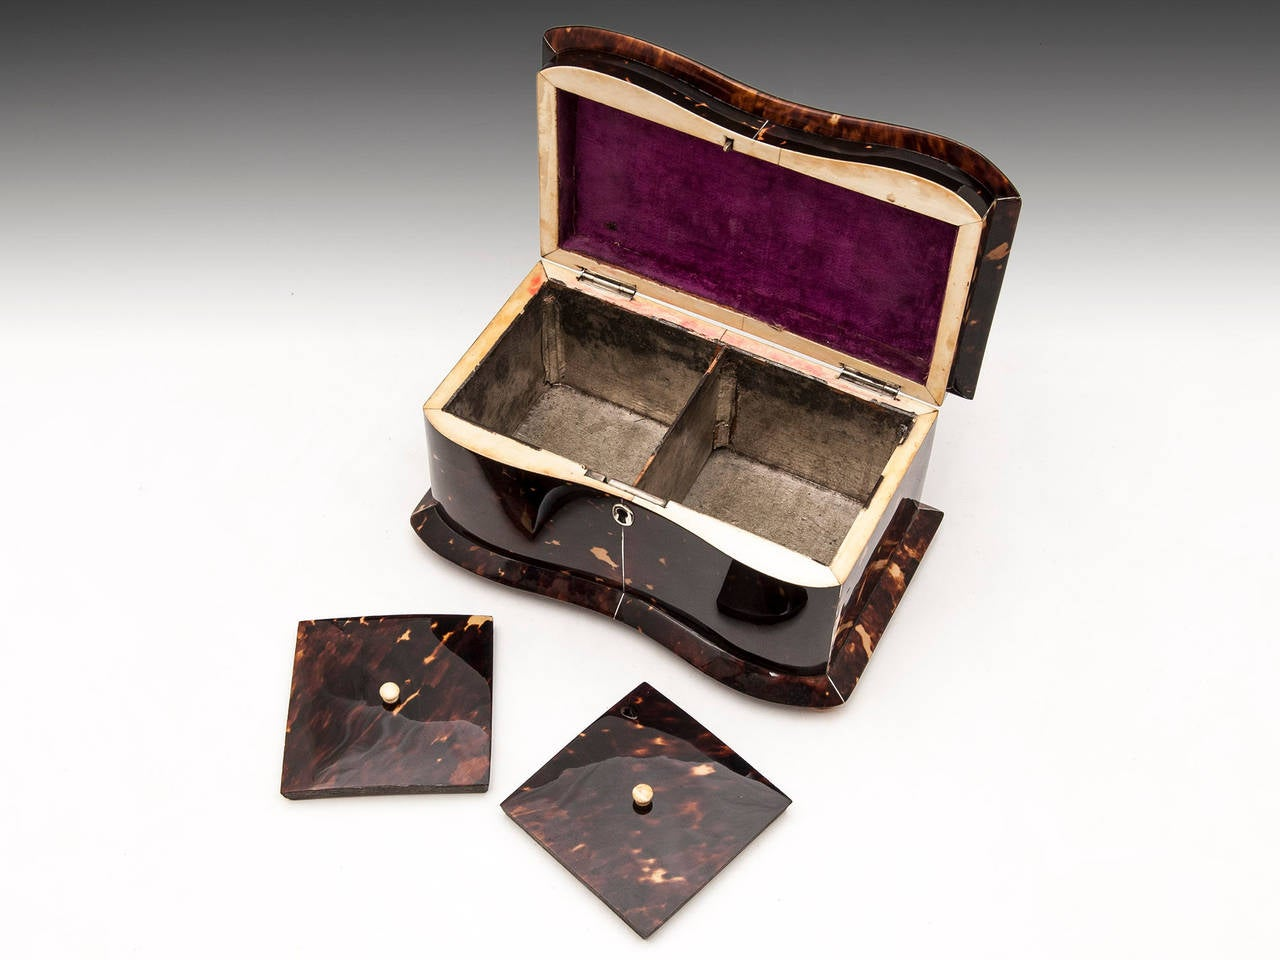 Regency Tortoiseshell Tea Caddy For Sale 3